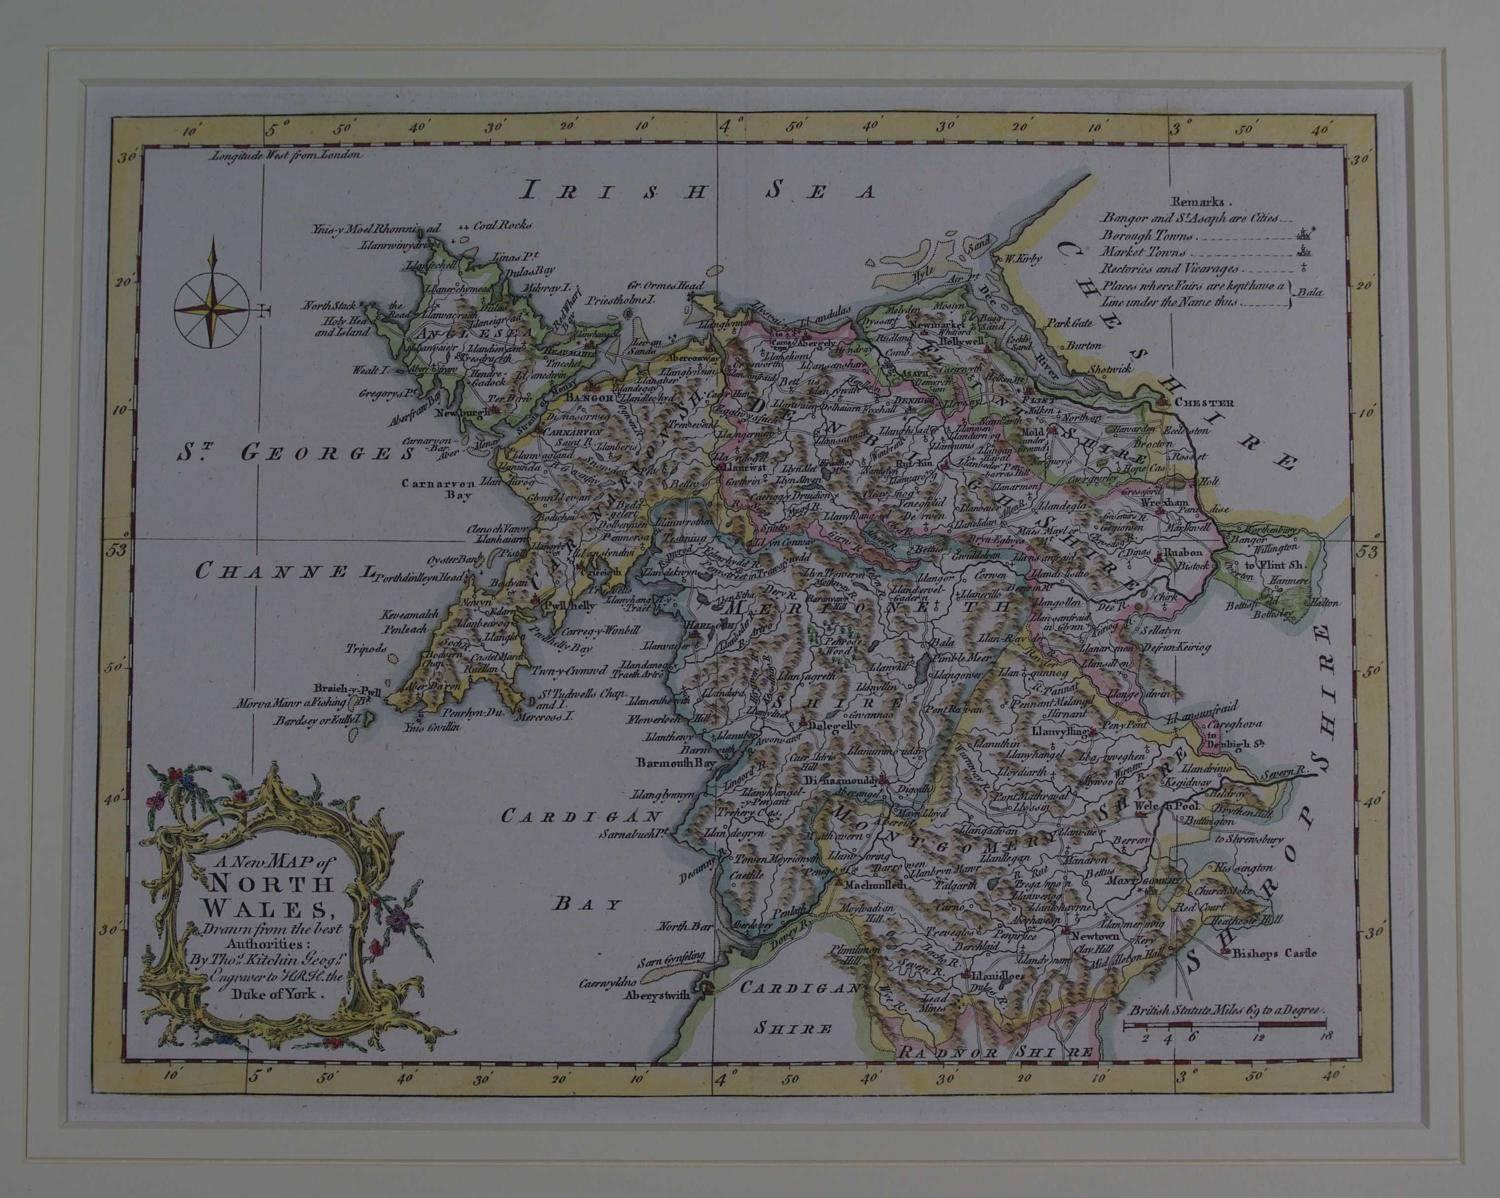 A New Map of North Wales, Drawn from the best Authorities by Thomas Ki